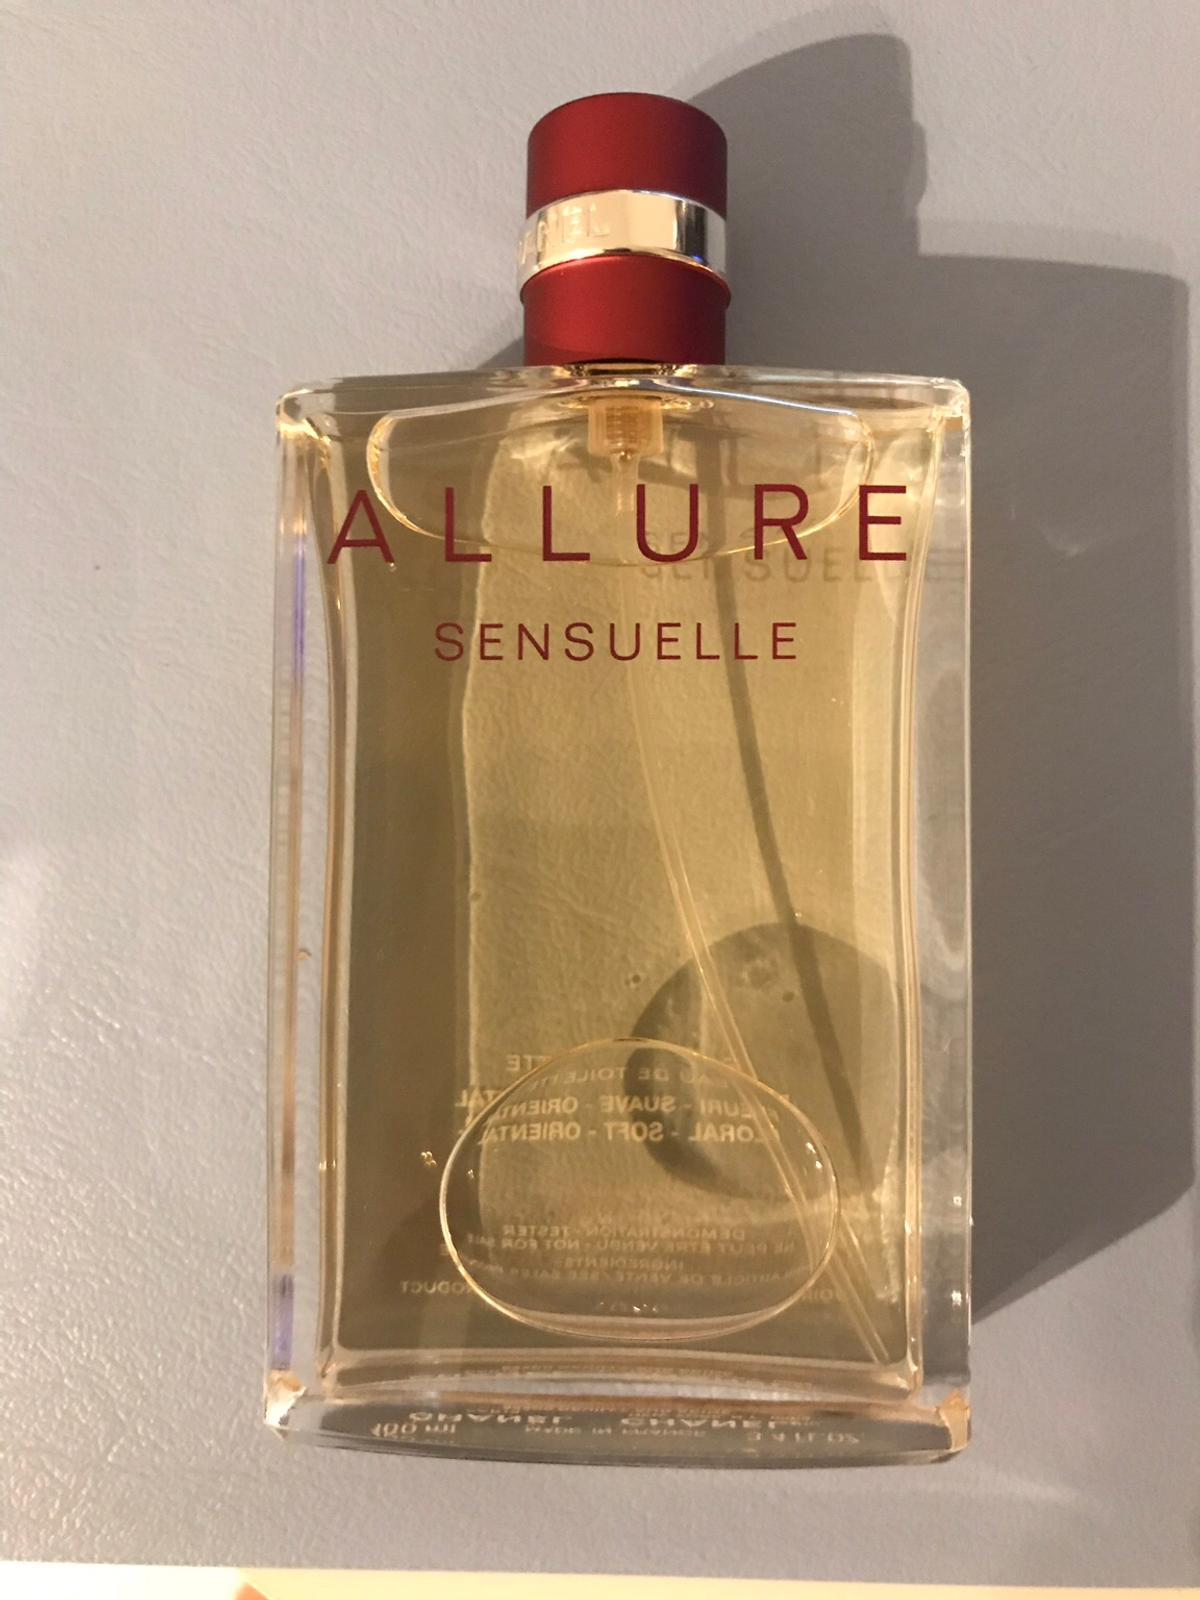 Chanel Allure Sensuelle Parfum 100ml Edt In 55270 Ober Olm For